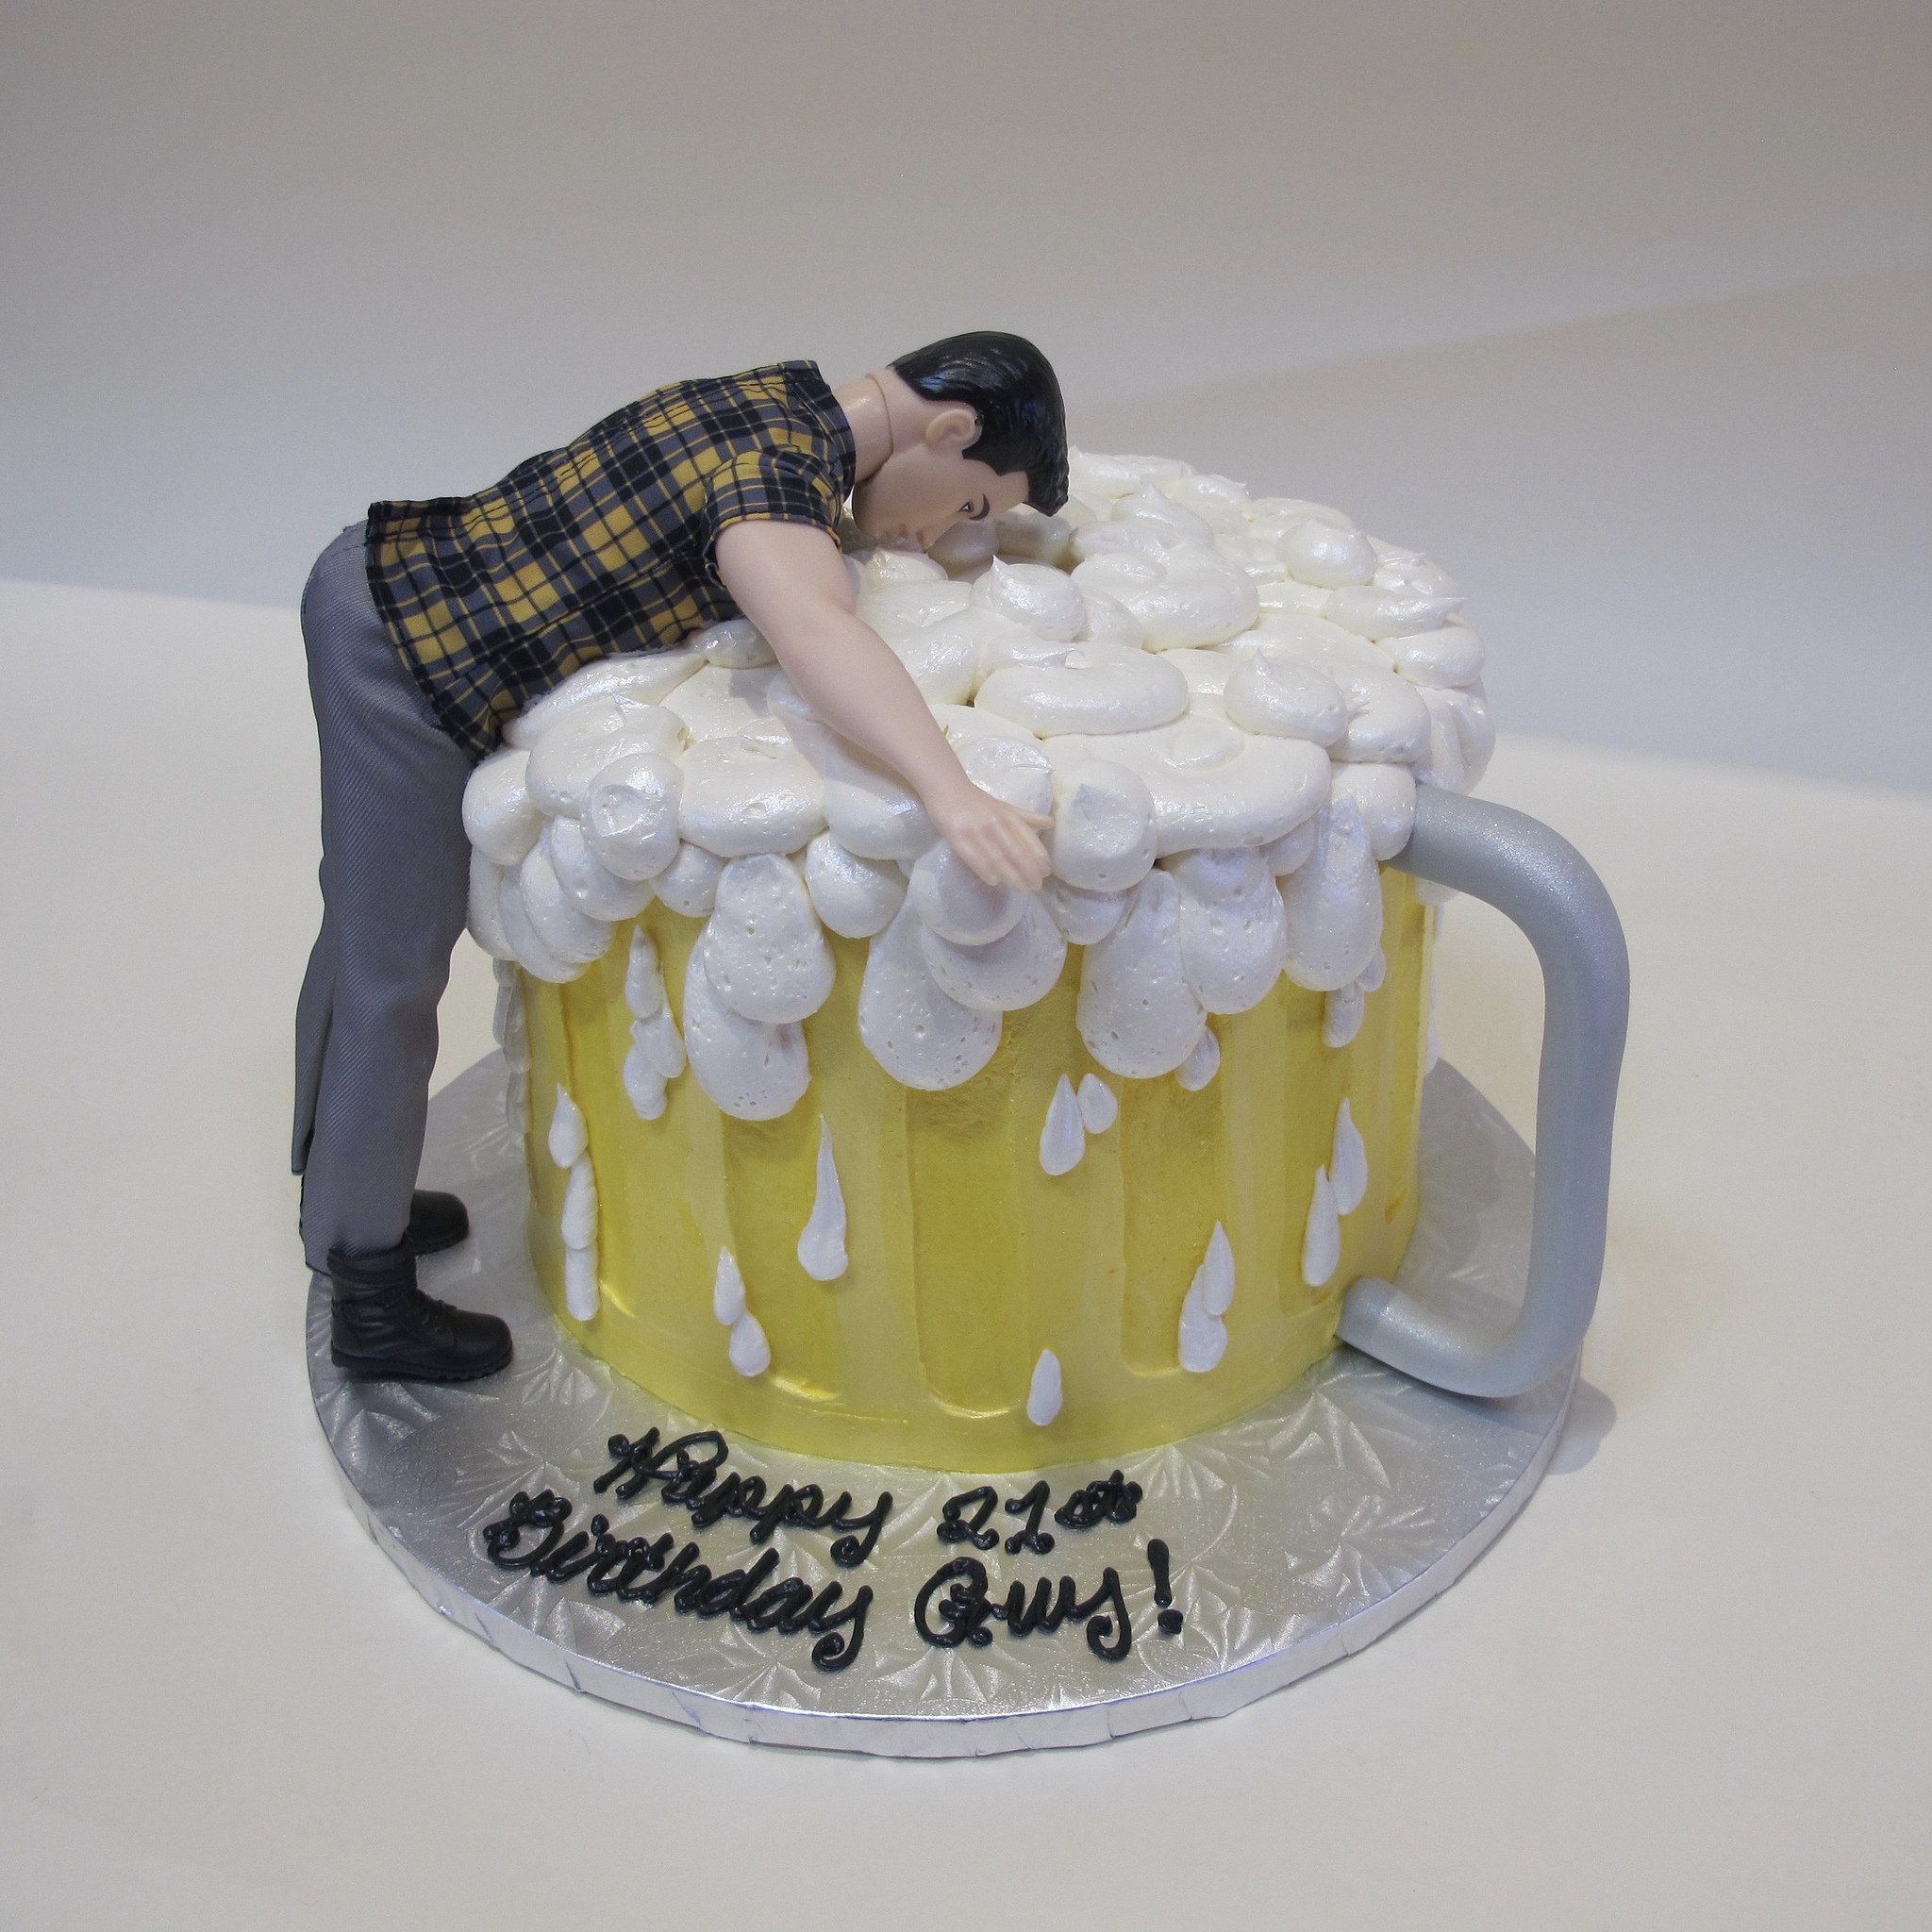 Groovy Dive Right In Guy 301190 Birthday Beer Cake Birthday Cake For Personalised Birthday Cards Beptaeletsinfo